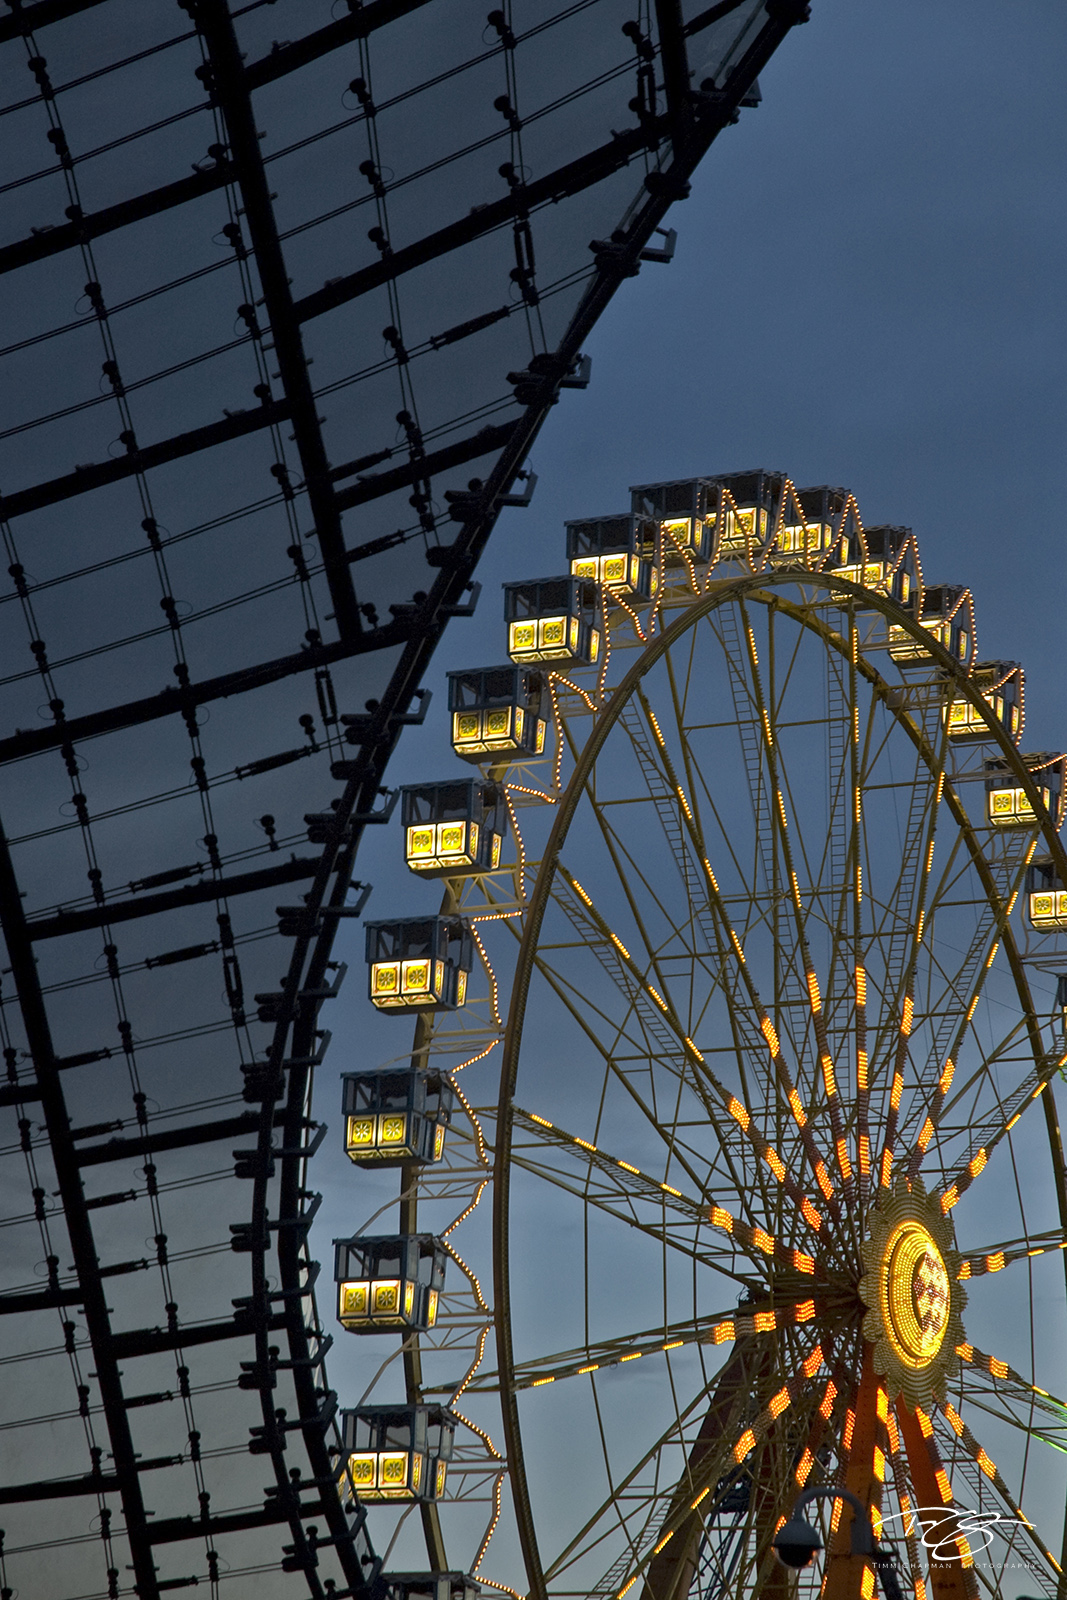 germany, munich, olympiapark, ferris wheel, amusement park, bavaria, blue hour, abstract, München, photo